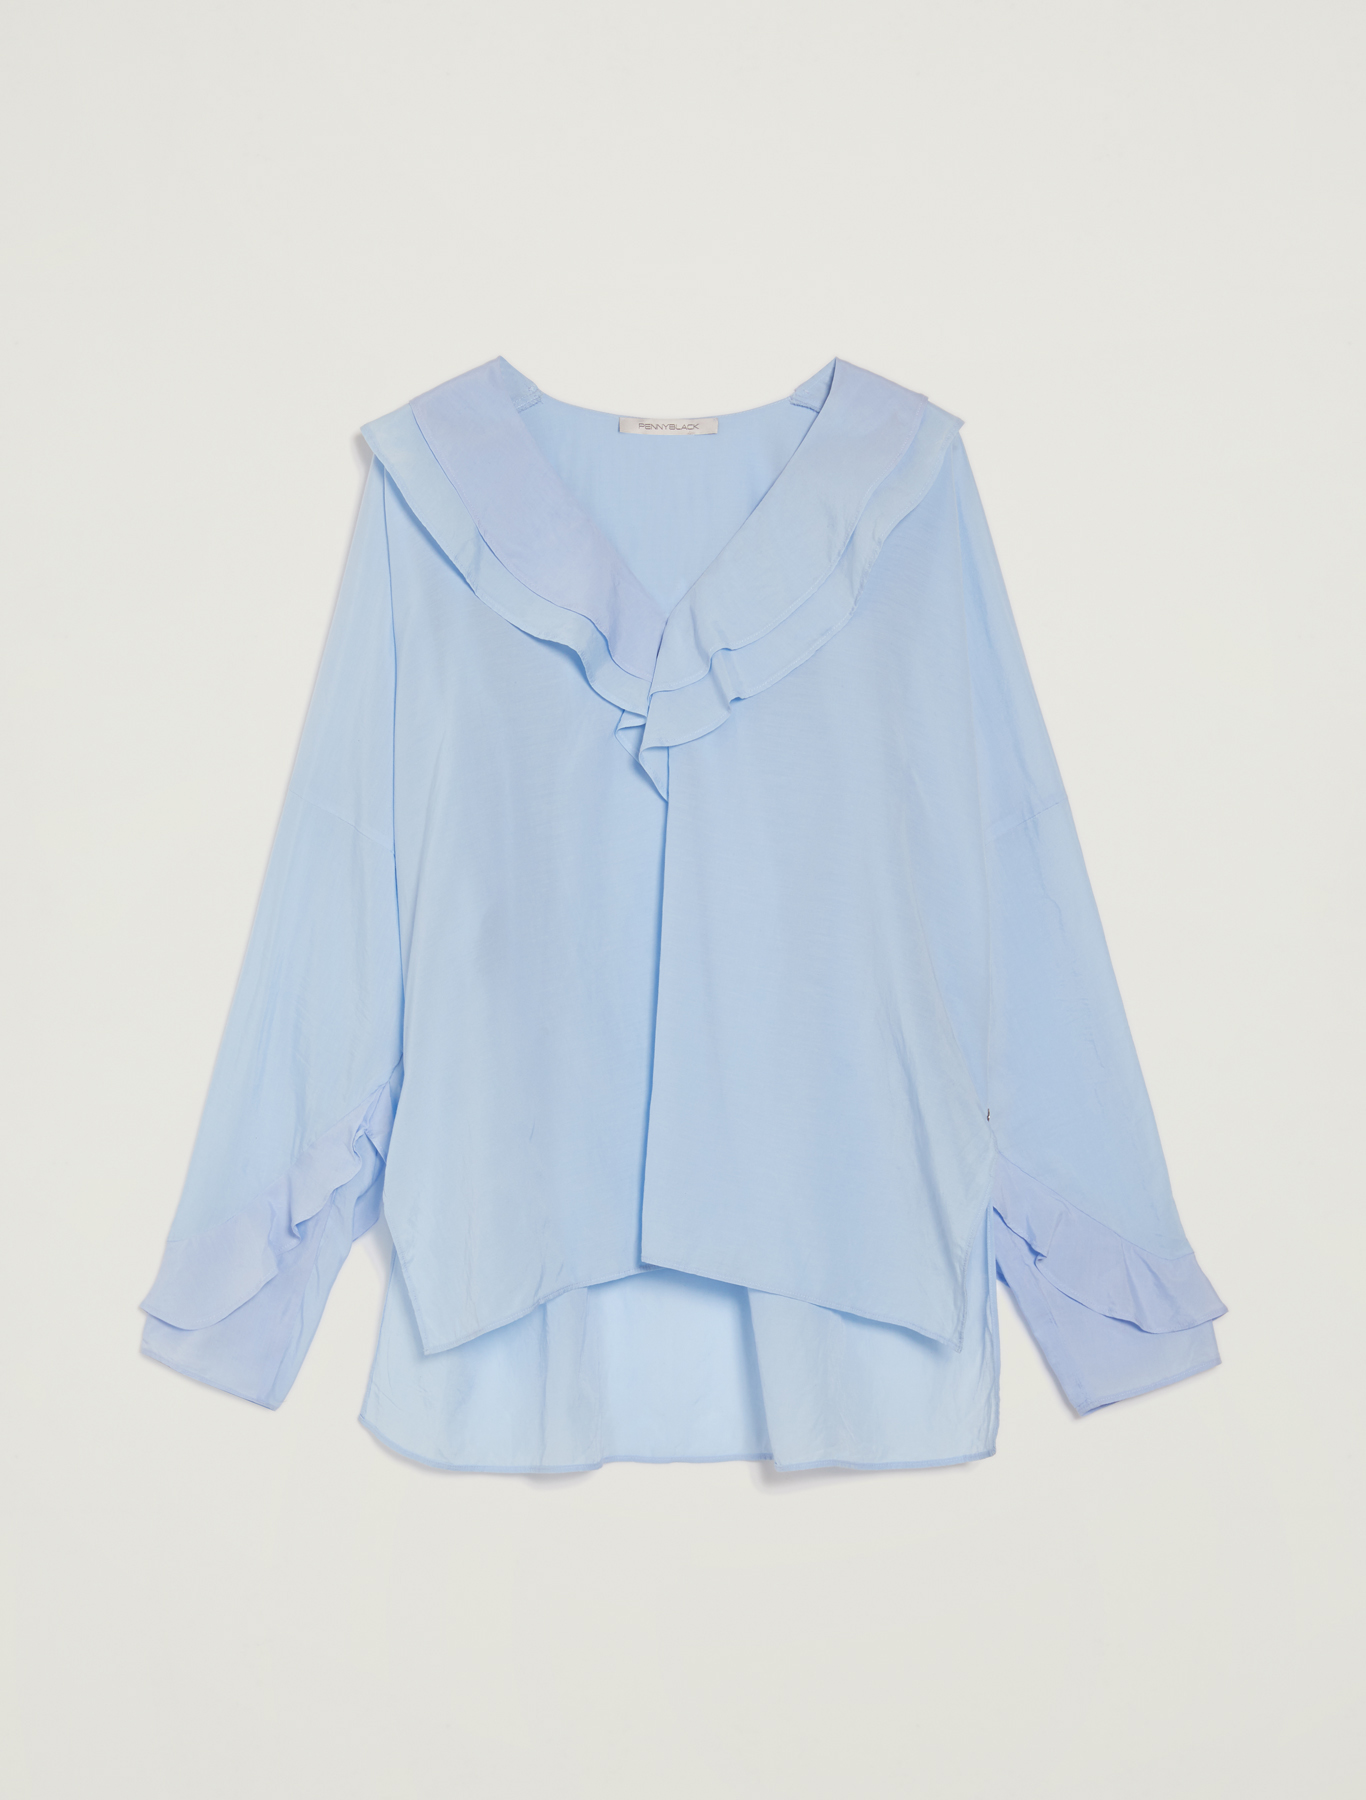 Muslin blouse with flounce - light blue - pennyblack